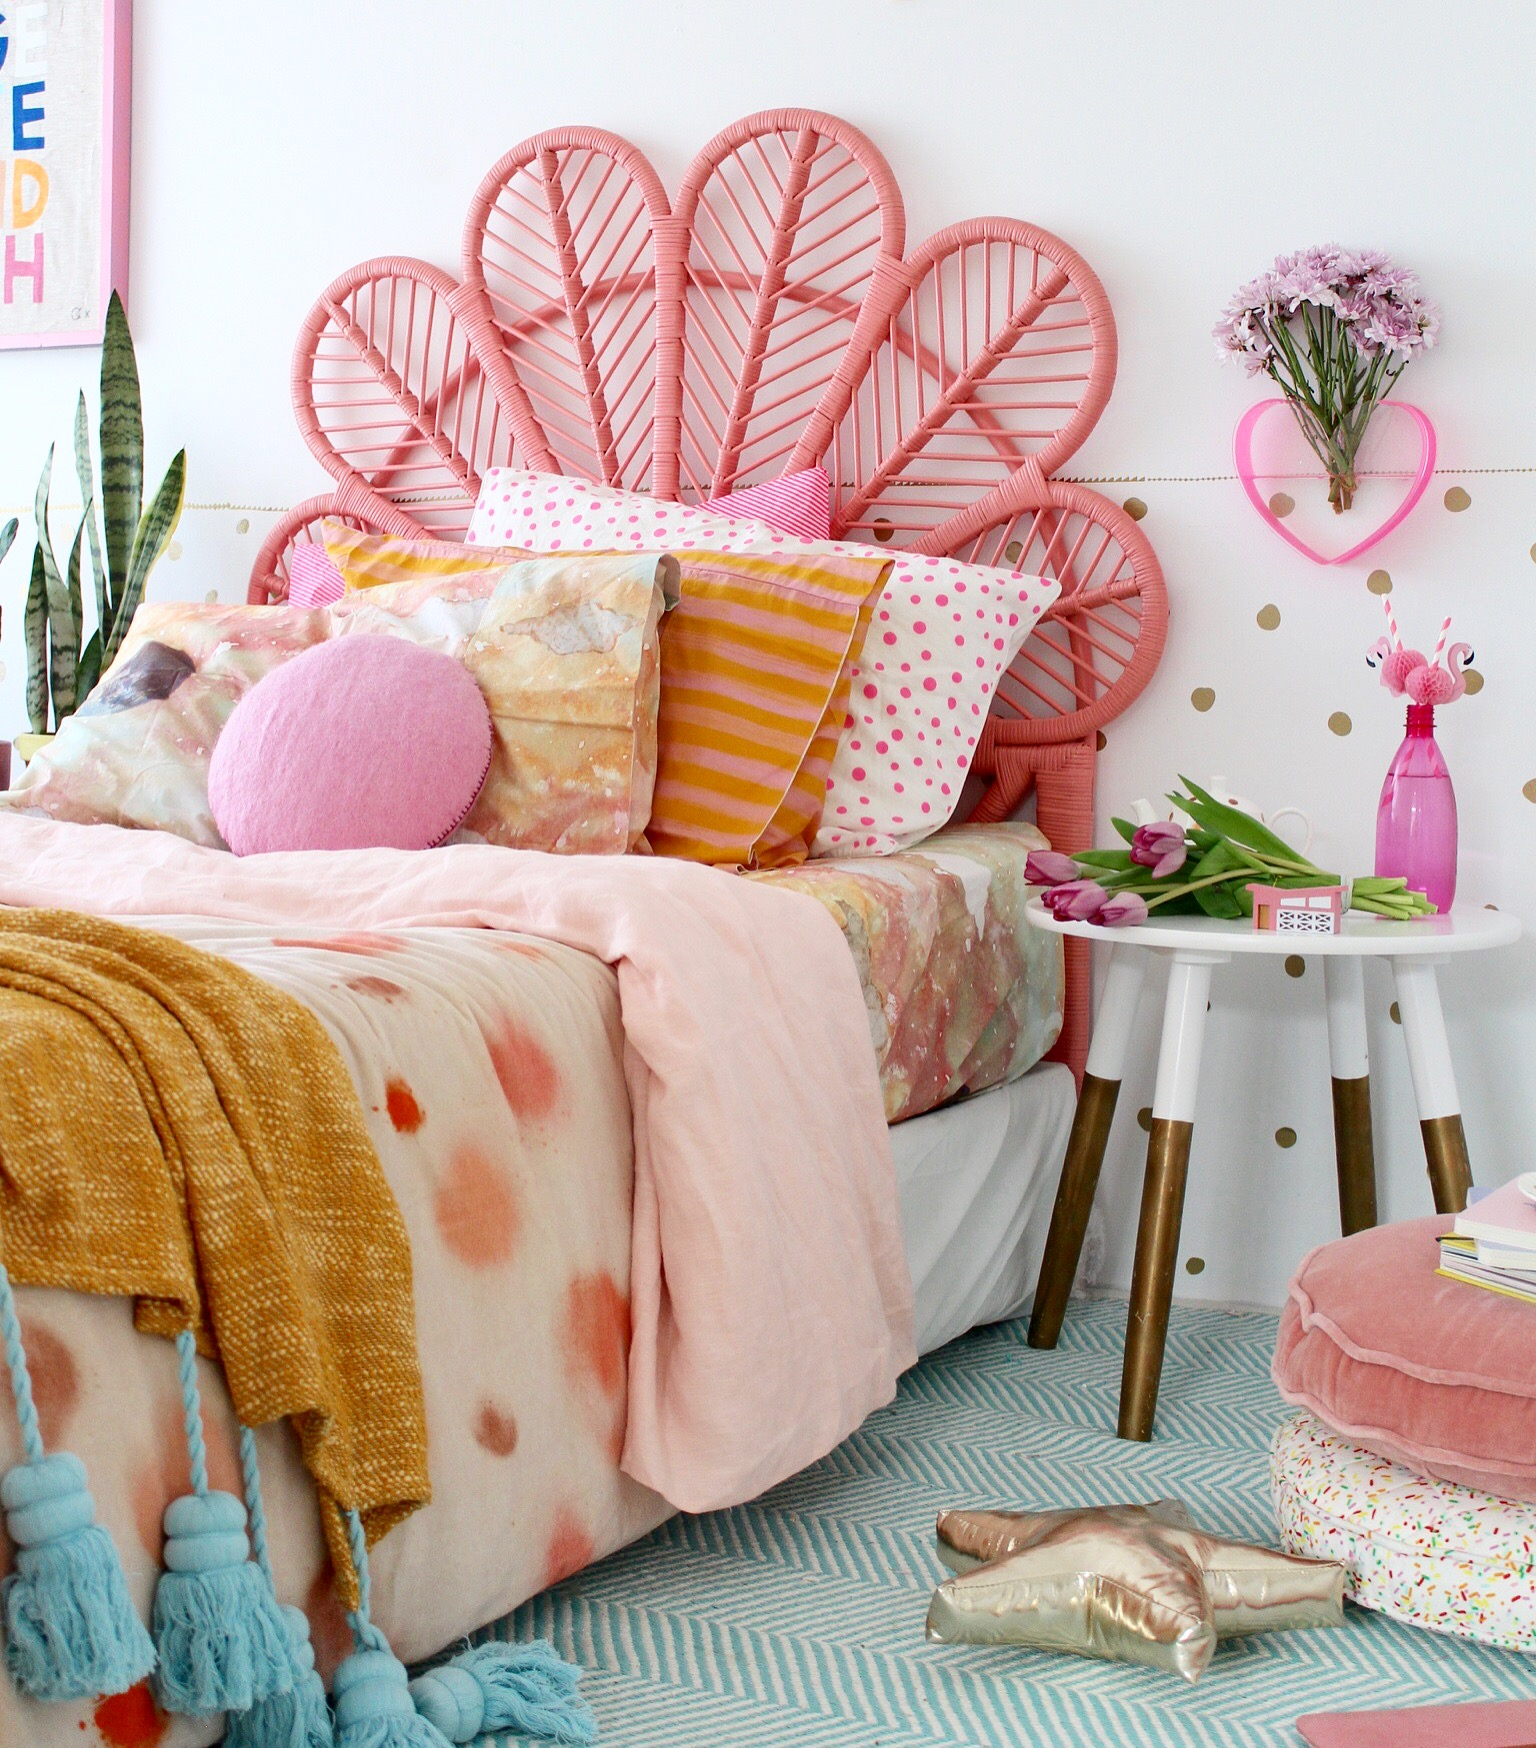 Modern Boho Bedroom Ideas Colour Crush With Kip And Co More On The Blog